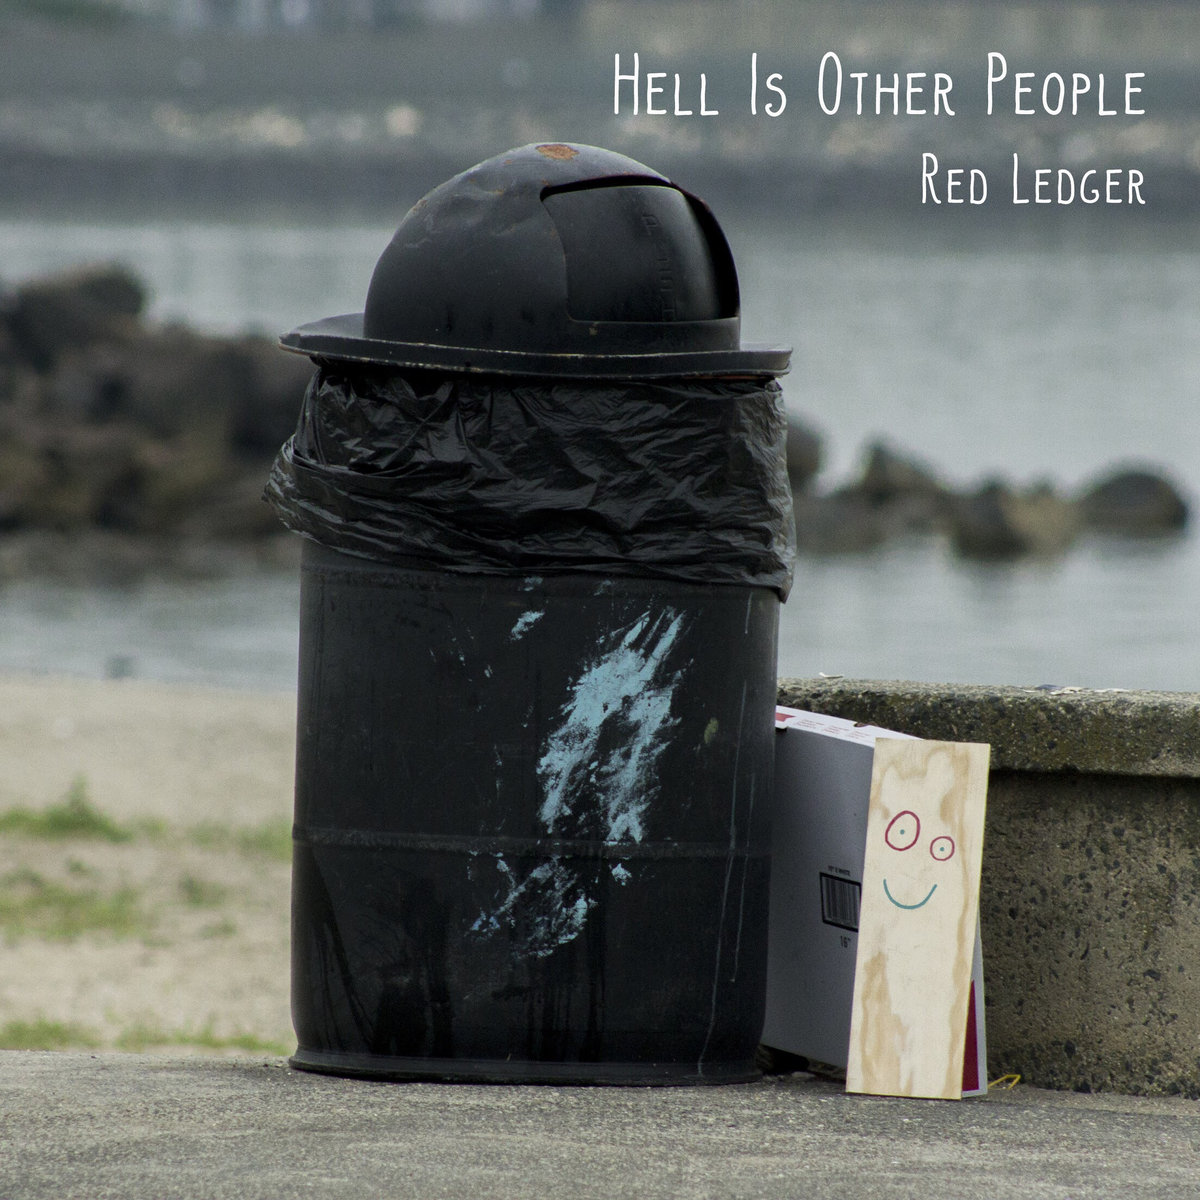 Red Ledger - Hell Is Other People